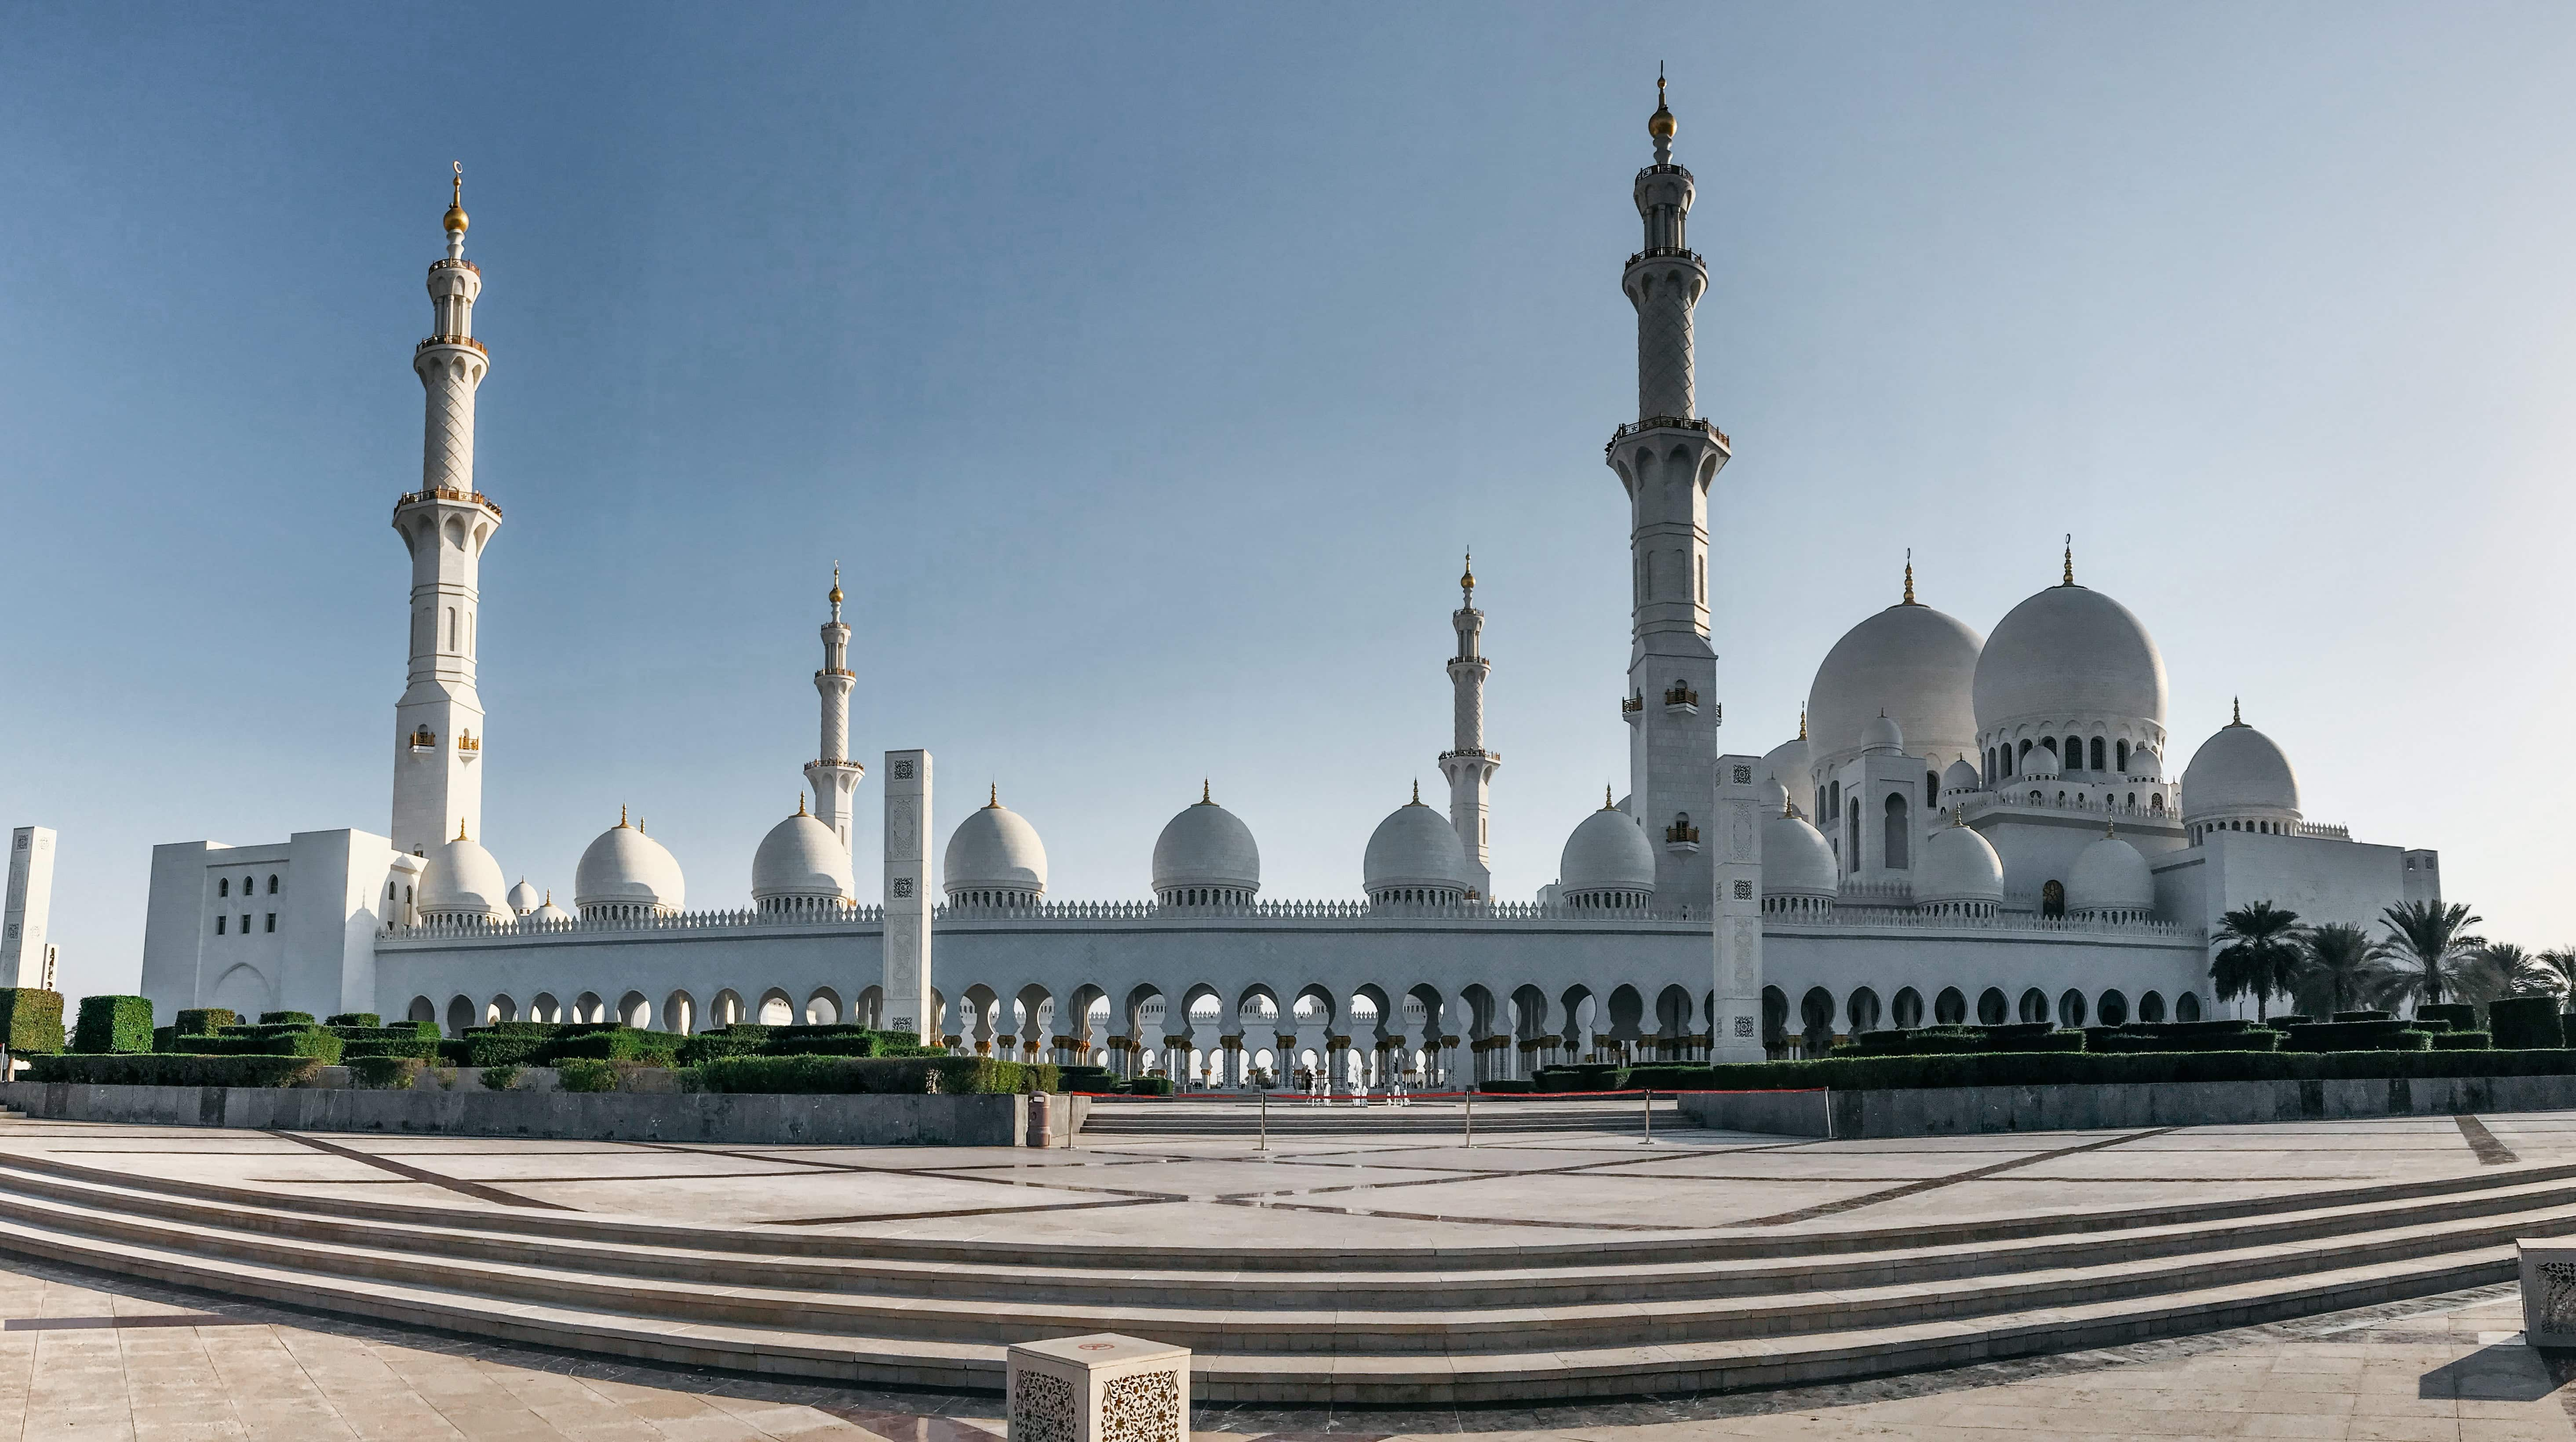 One of the first places I ever wanted to visit in the world was Abu Dhabi -- and we couldn't have had a more fantastic experience! We were as comfortable as could be at Park Rotana's 5 Star Hotel, and greatly enjoyed touring the Sheikh Zayed Mosque, experiencing Ferrari World, and celebrating National Day! Read more at www.thefivefoottraveler.com